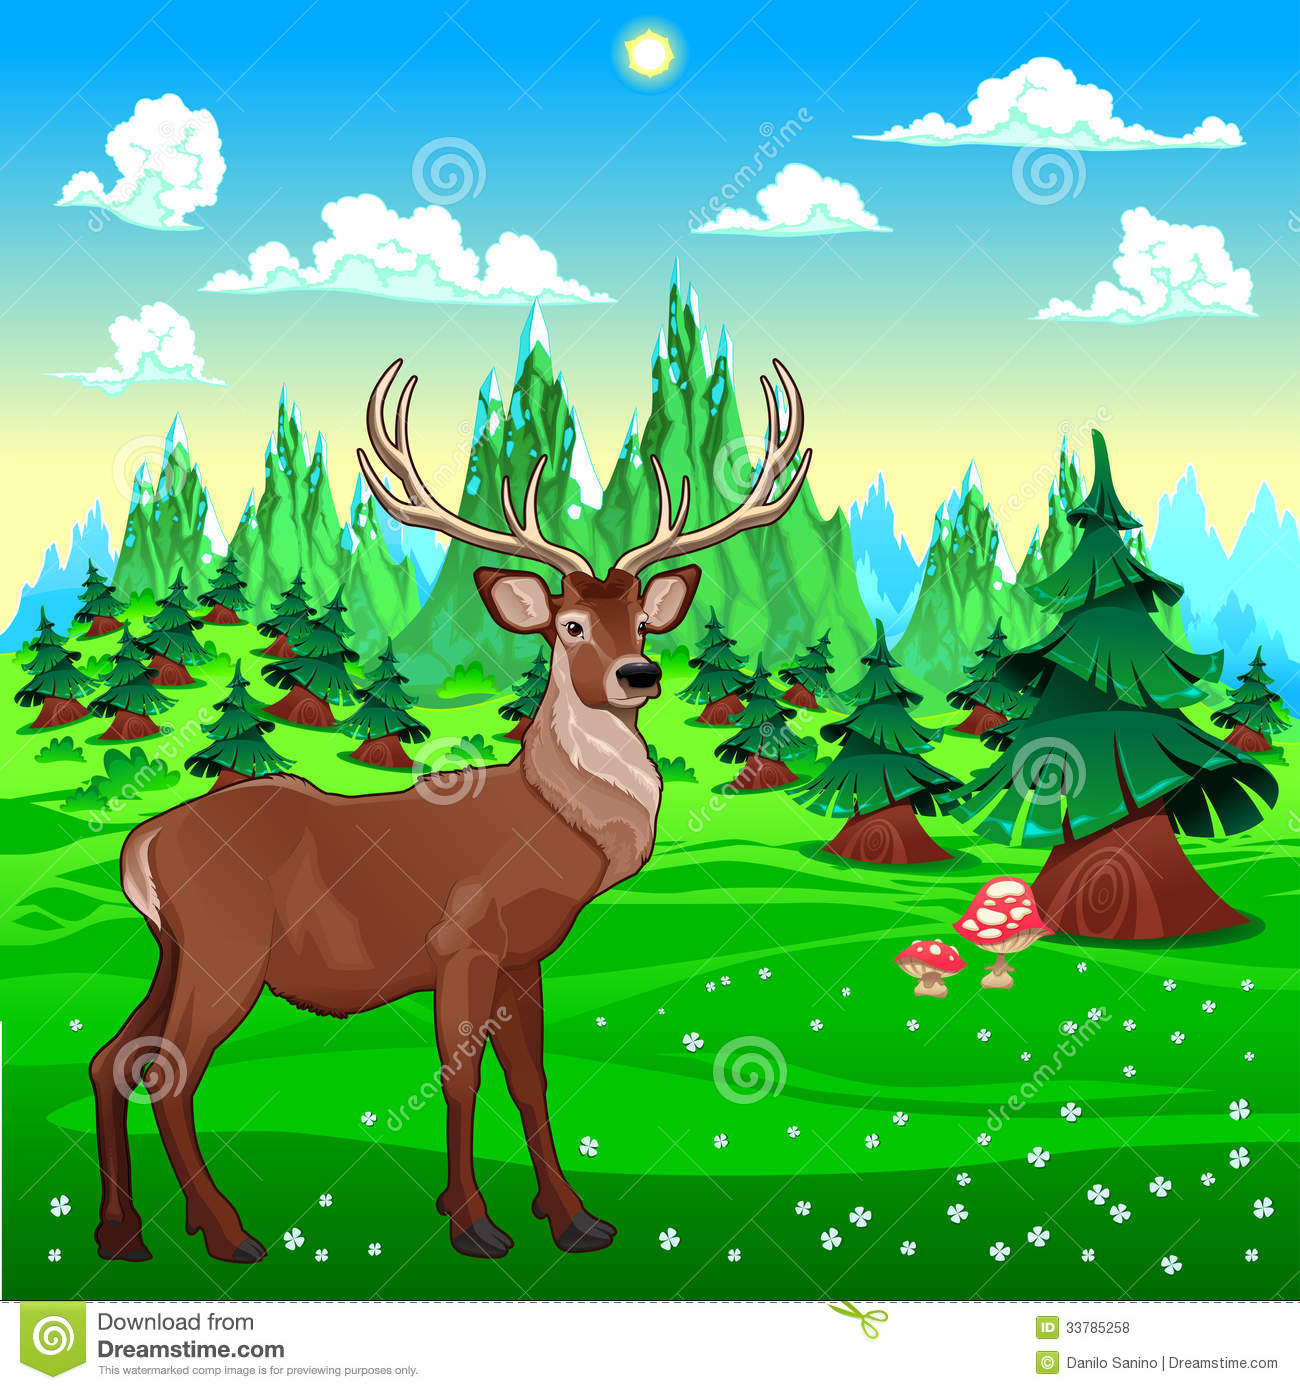 Landscape Illustration Vector Free: Deer In Mountain Landscape. Royalty Free Stock Photos